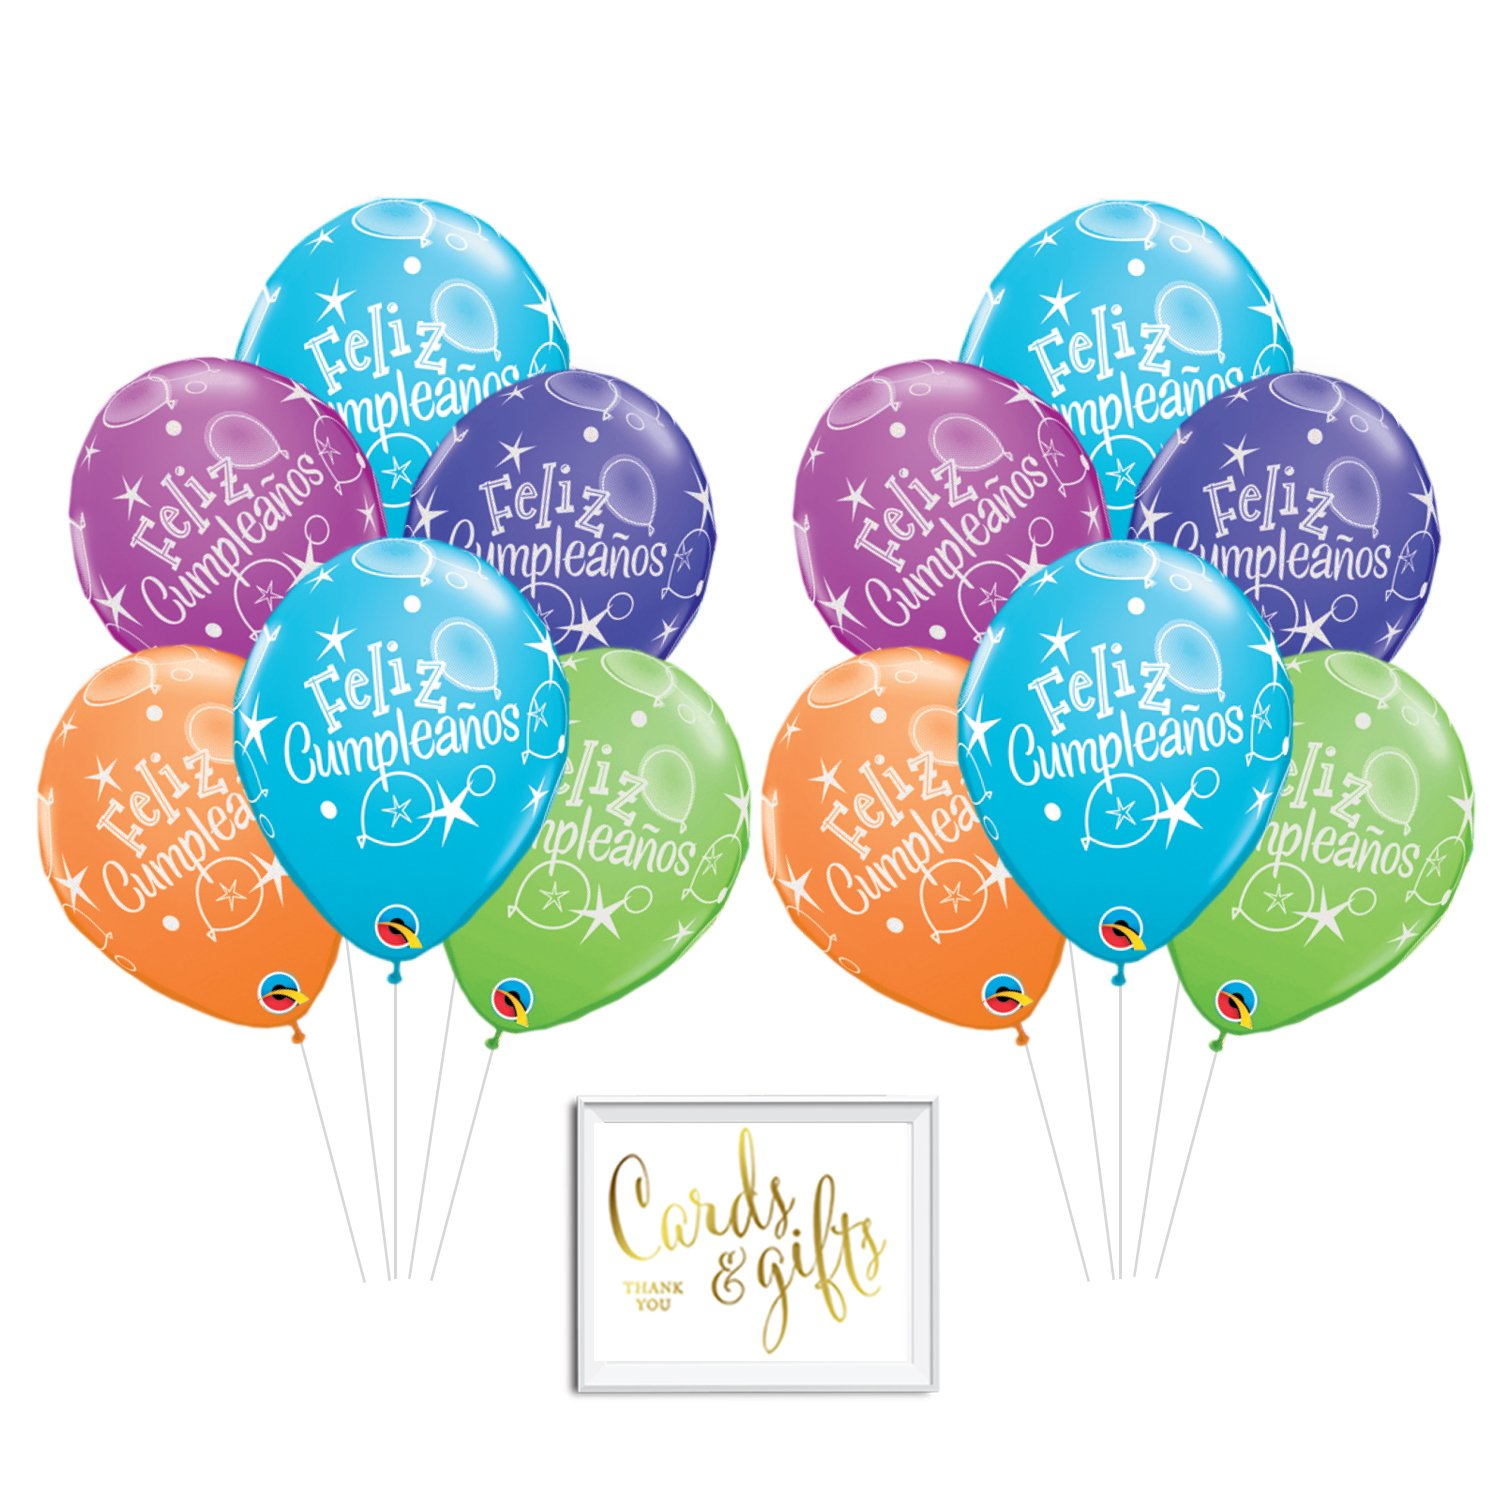 Andaz Press Bulk High Quality Latex Balloon Party Kit with Gold Cards & Gifts Sign, Feliz Cumpleaños...